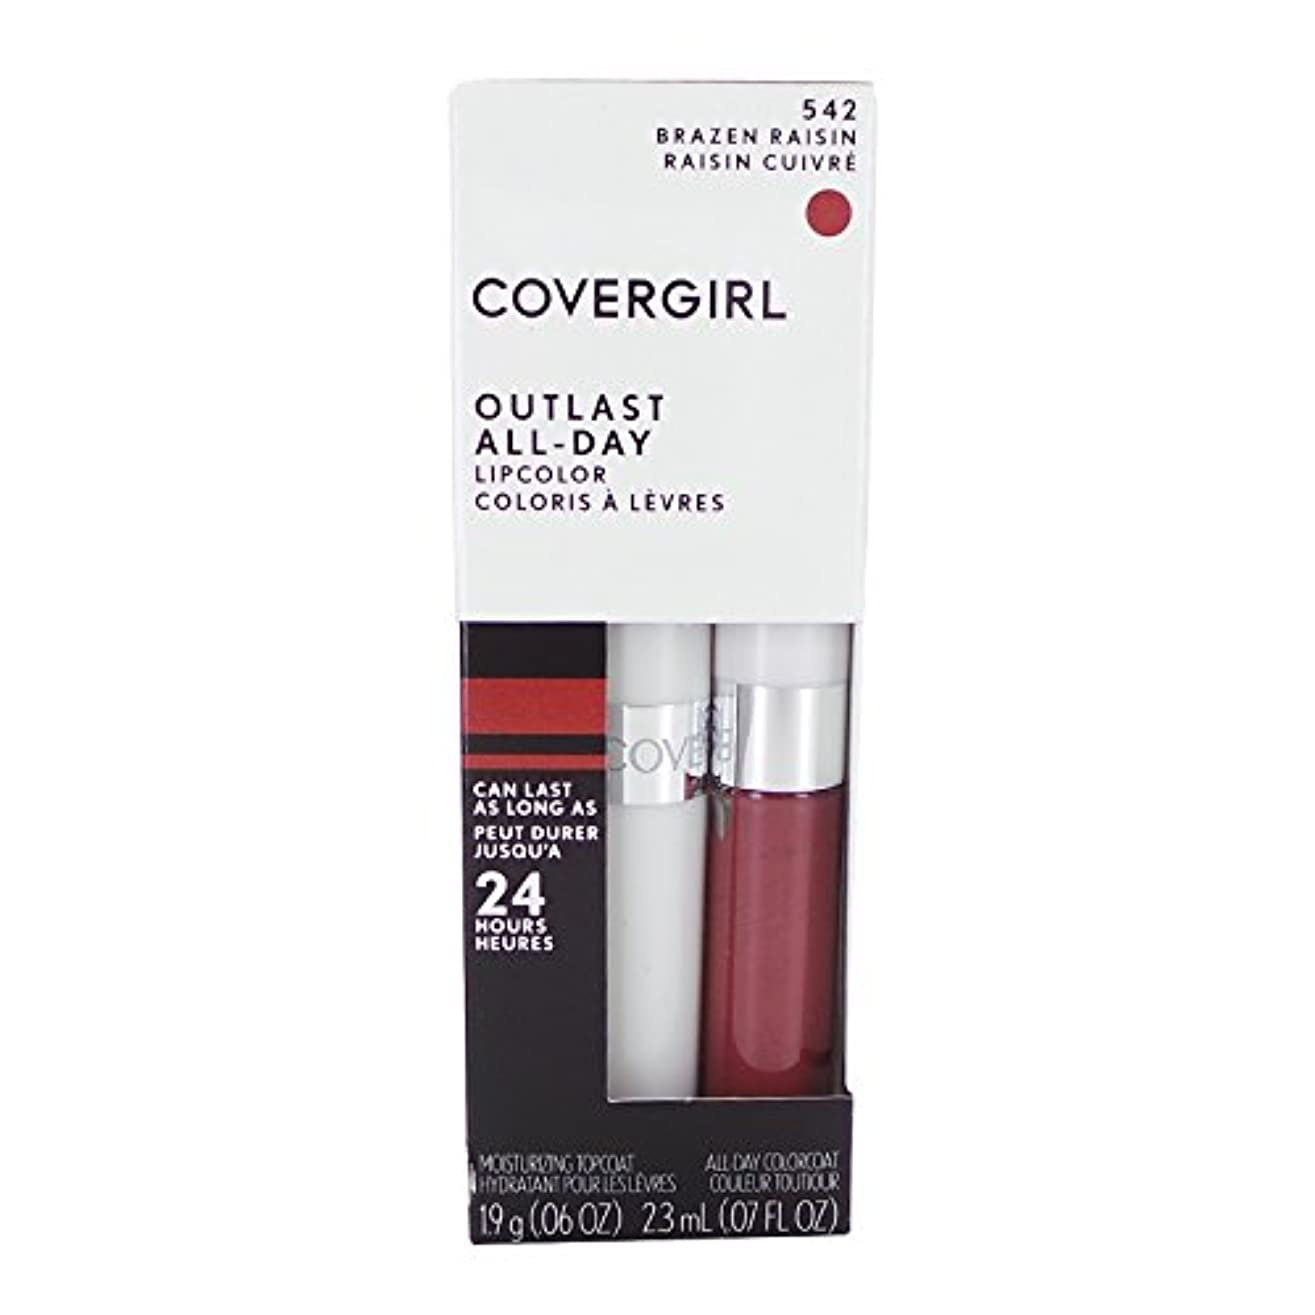 ファンブルメッシュ五十(3 Pack) COVERGIRL Outlast All-Day Lip Color - Brazen Raisin 542 (並行輸入品)